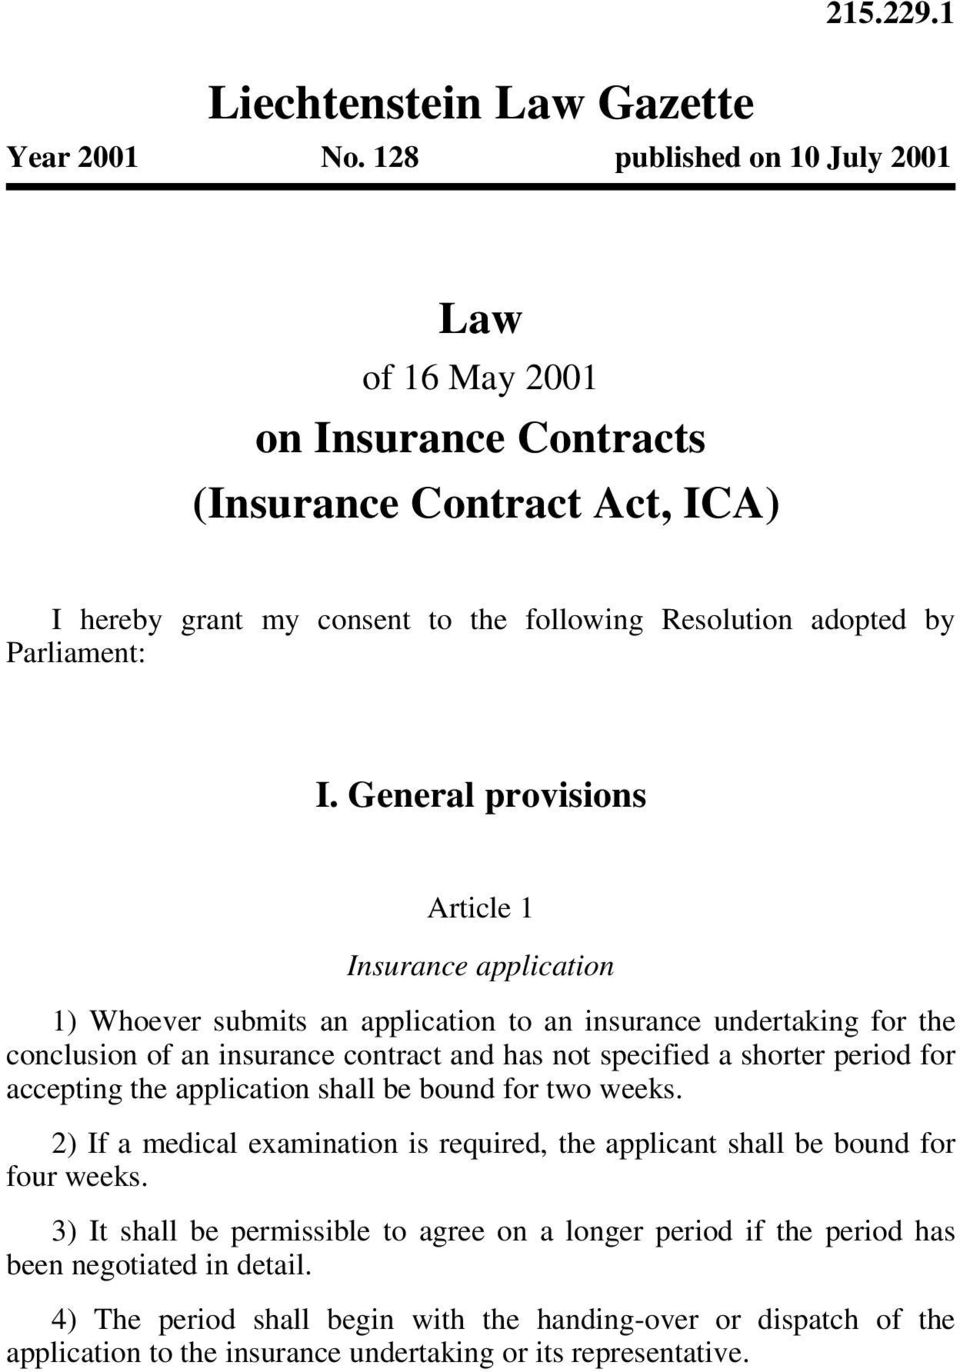 General provisions Article 1 Insurance application 1) Whoever submits an application to an insurance undertaking for the conclusion of an insurance contract and has not specified a shorter period for